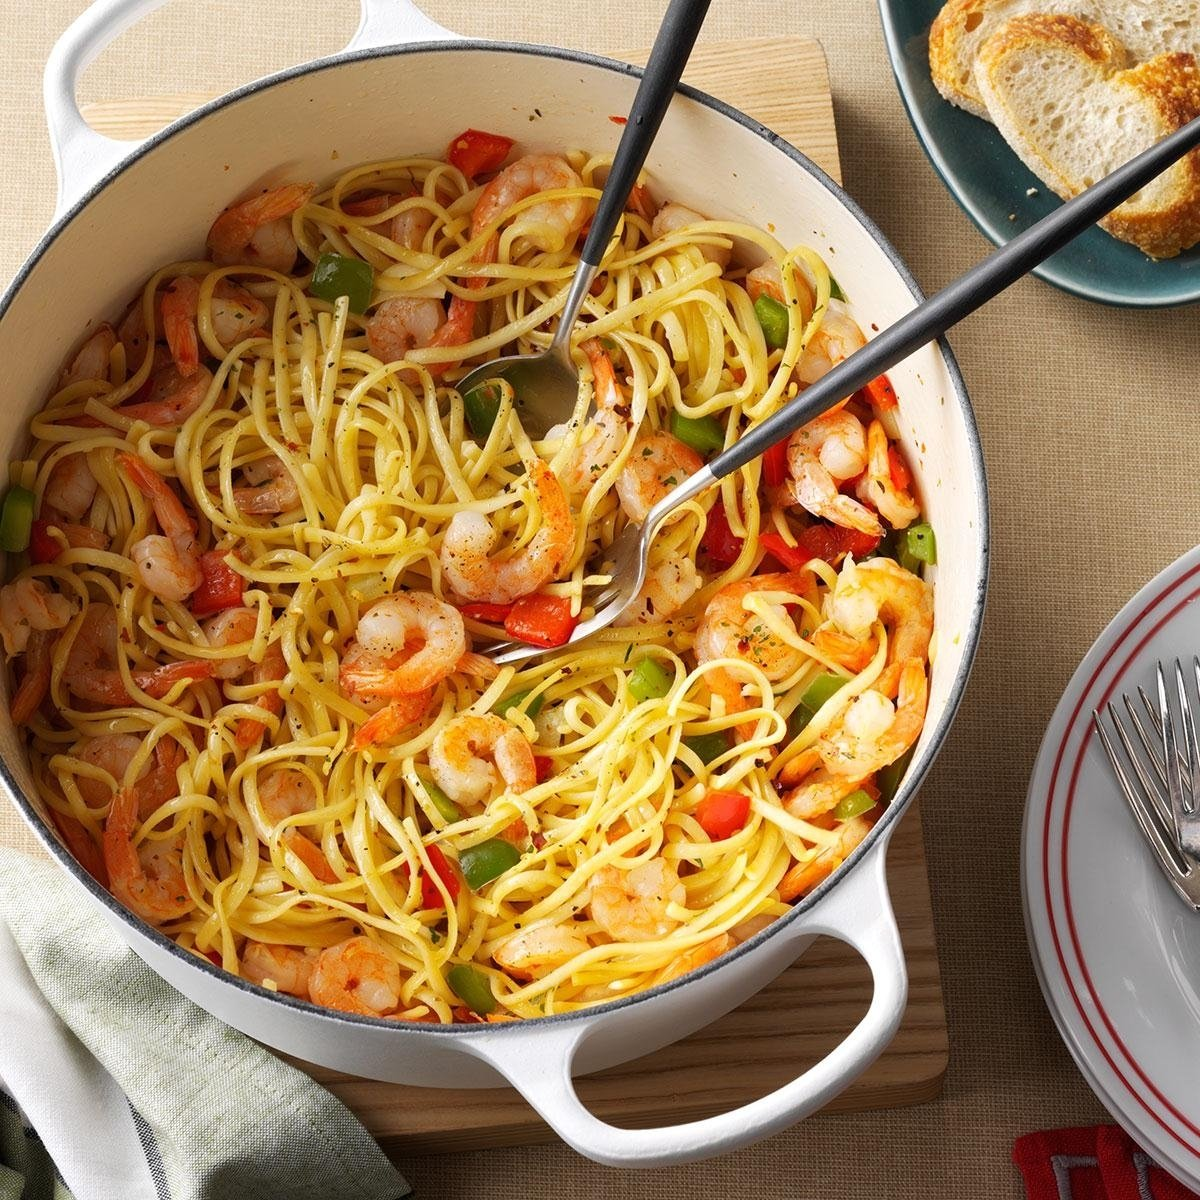 10 Unique Dinner Party Menu Ideas For 10 40 recipes to celebrate feast of the seven fishes taste of home 5 2020